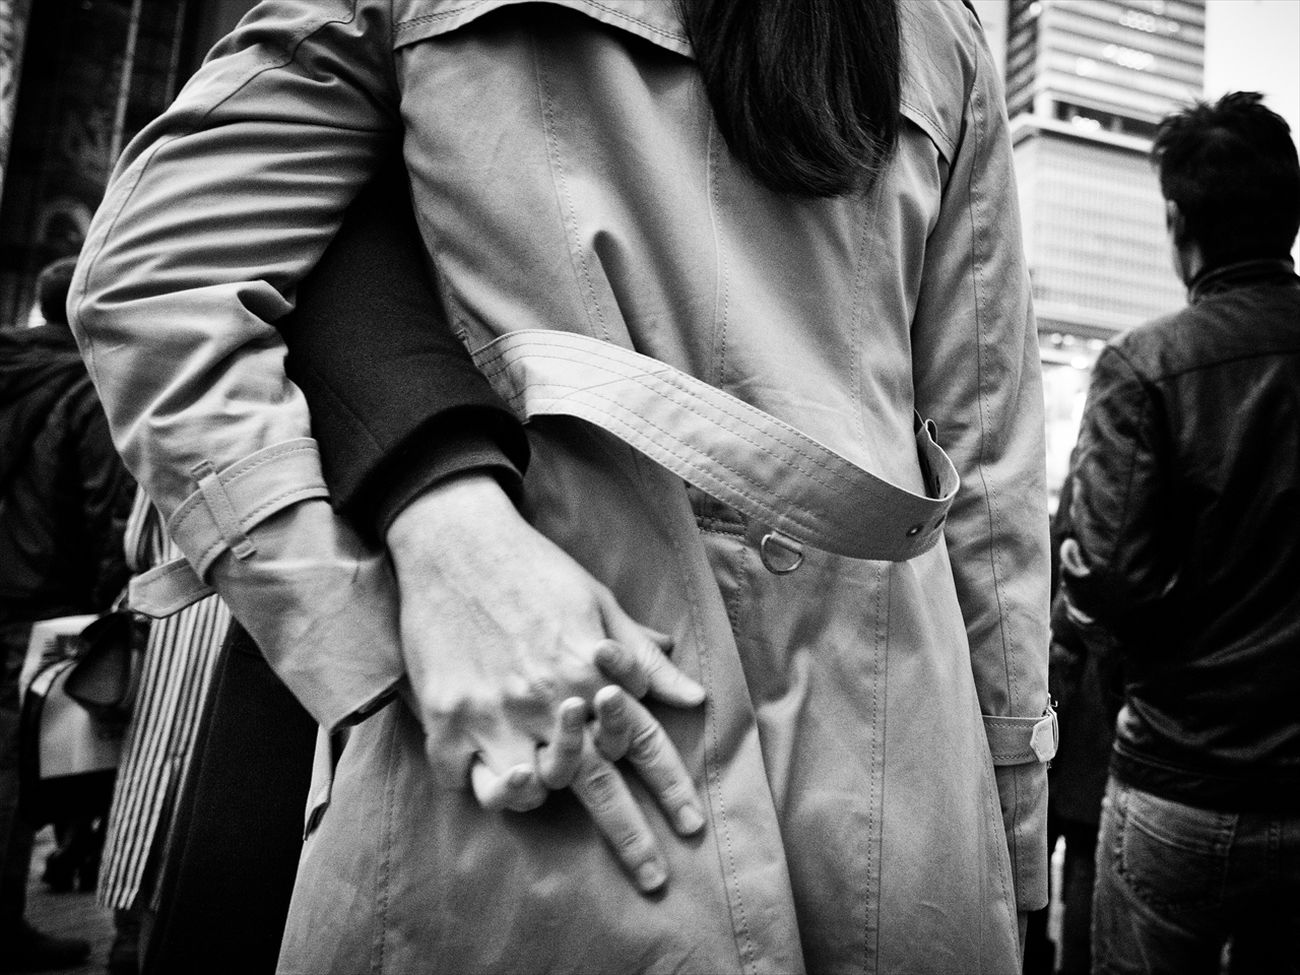 Hands #5 B&w Street Photography Black And White Creative Light And Shadow Monochrome Photography People Shibuya SHINJYUKU Street Street Photography Streetphoto Streetphoto_bw Streetphotographer Streetphotographers Streetphotography Streetphotography_bw Tokyo Tokyo Street Photography Tokyo,Japan